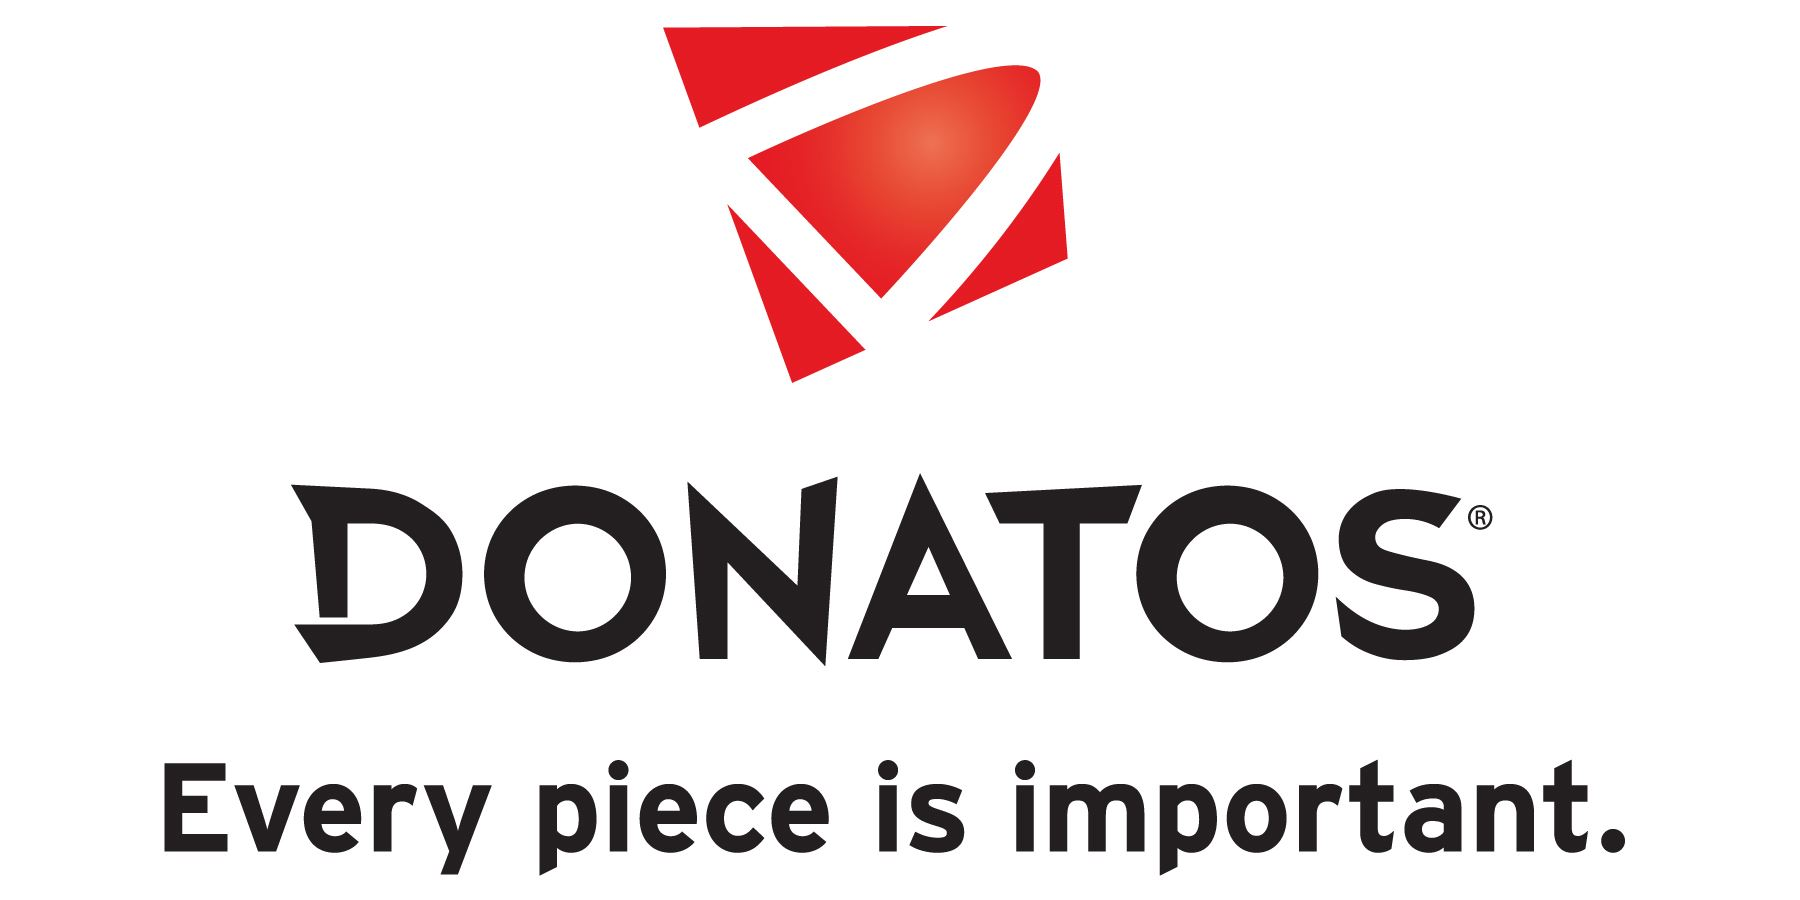 Donatos Every piece is important